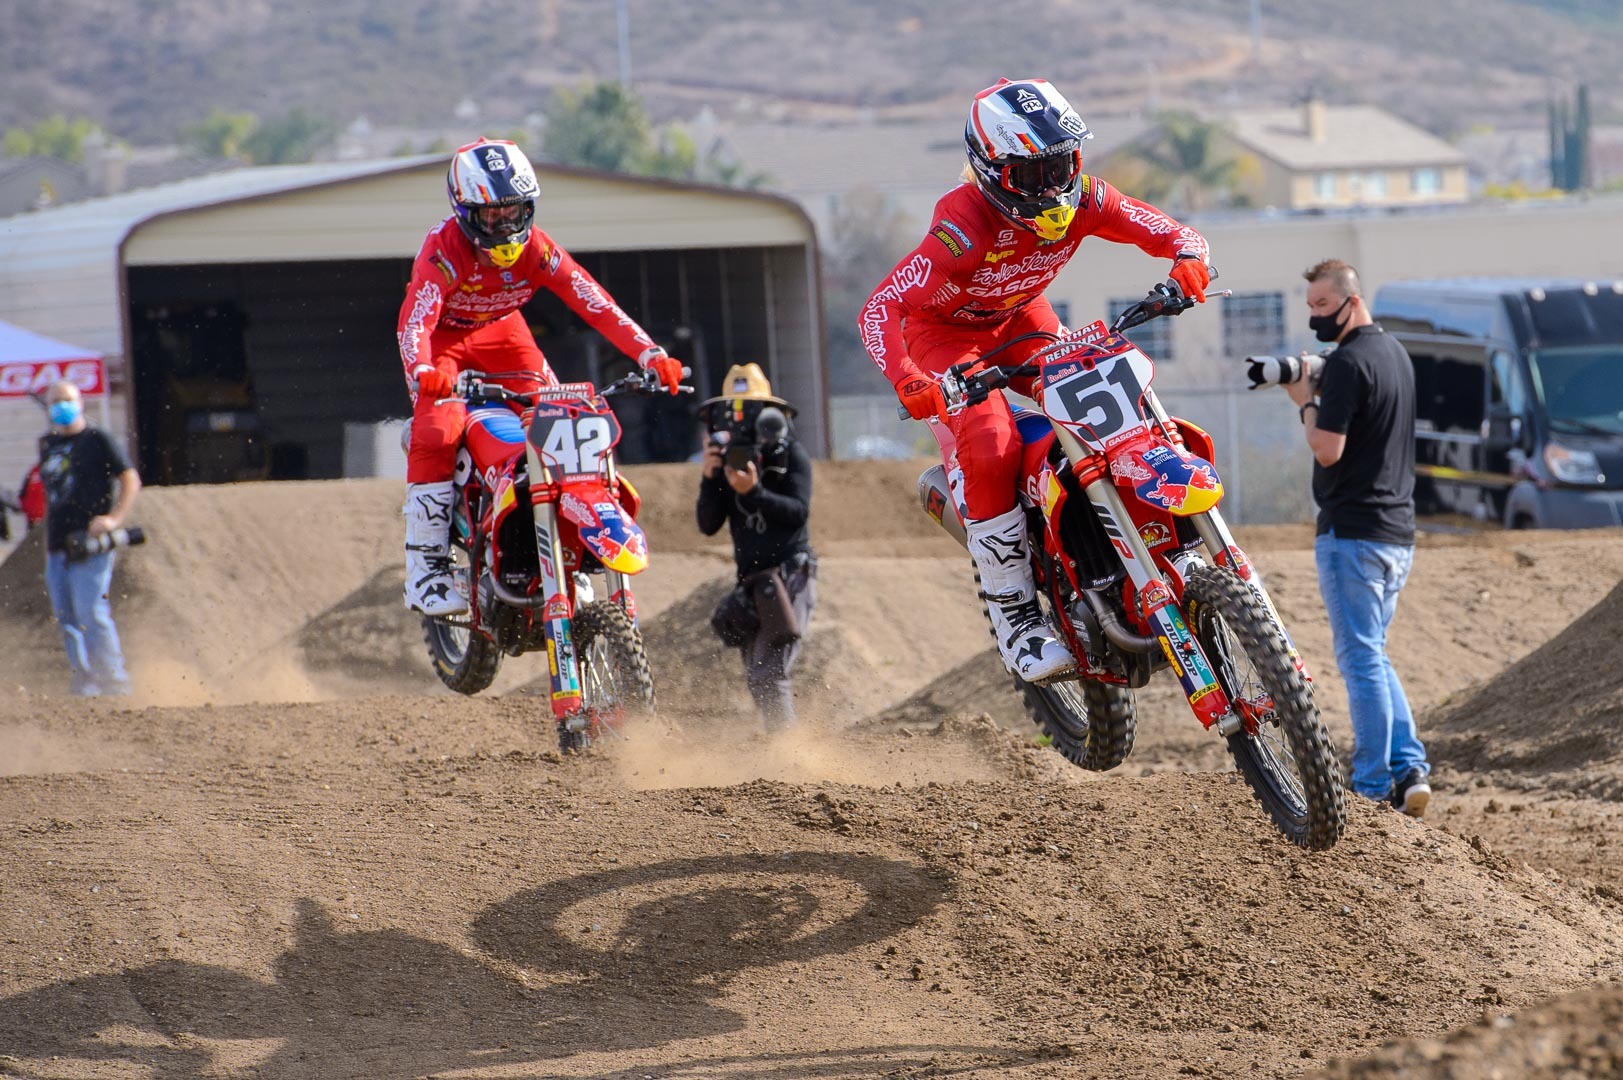 2021 GasGas Factory Racing Teams First Look: Supercross and Motocross